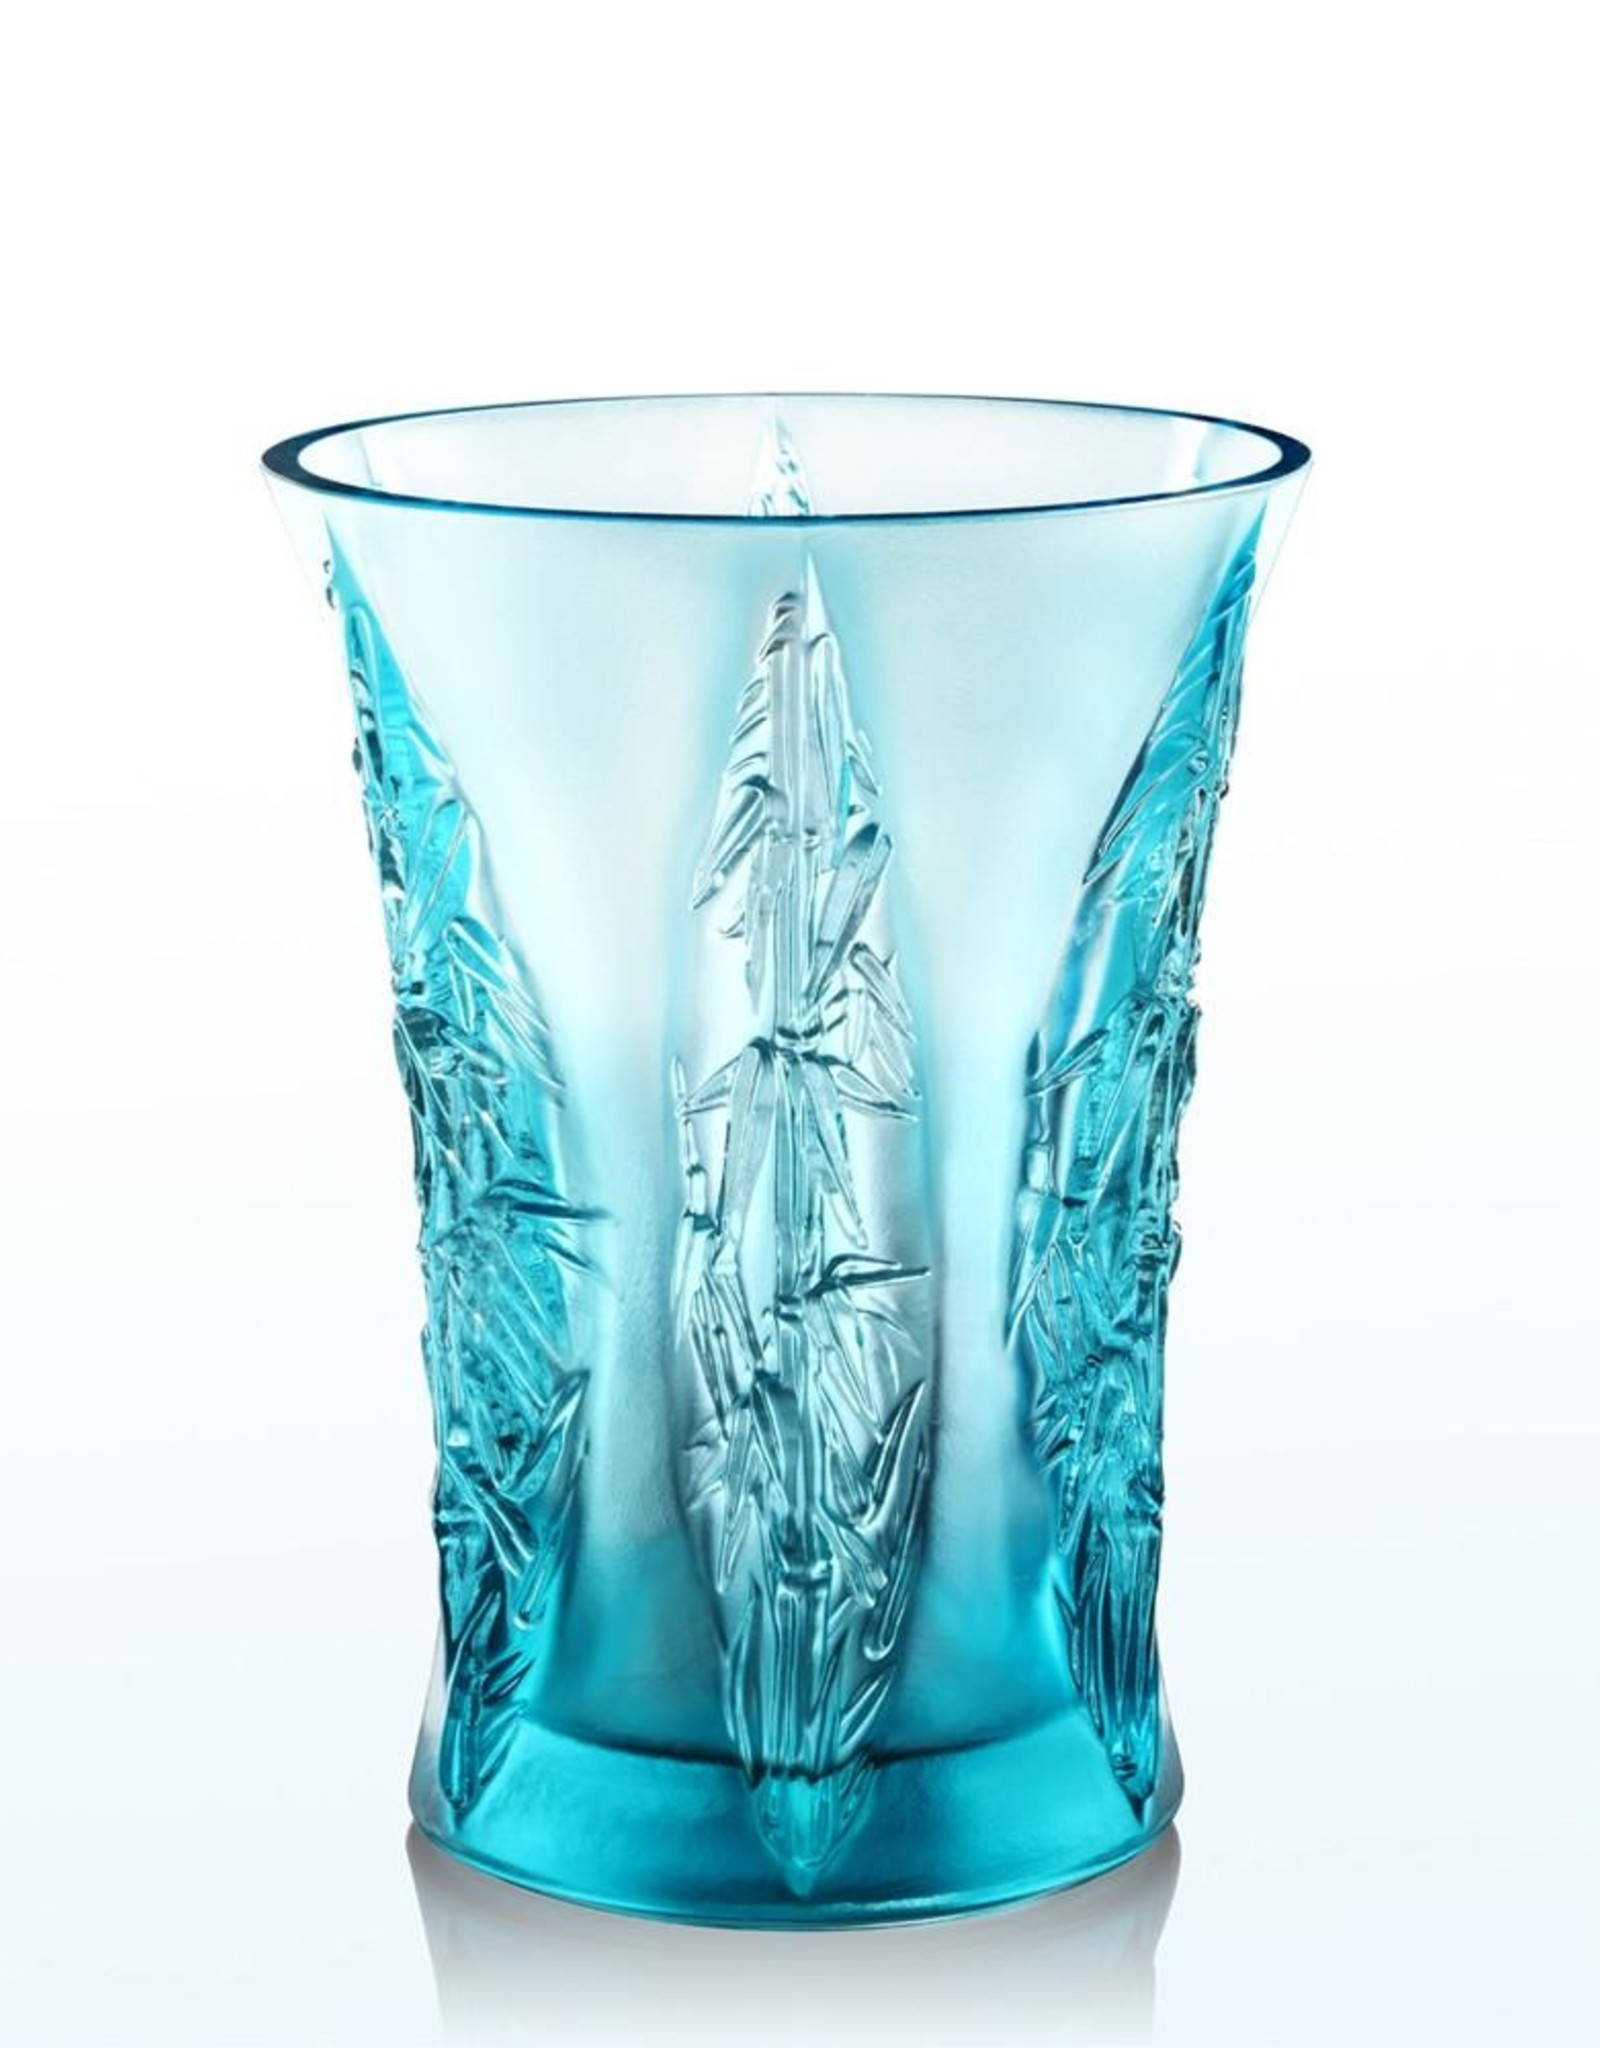 LIULI Crystal Art Crystal Floral Vase, In the Presence of Spring-Lovely Bamboo Shadows, Sky Blue